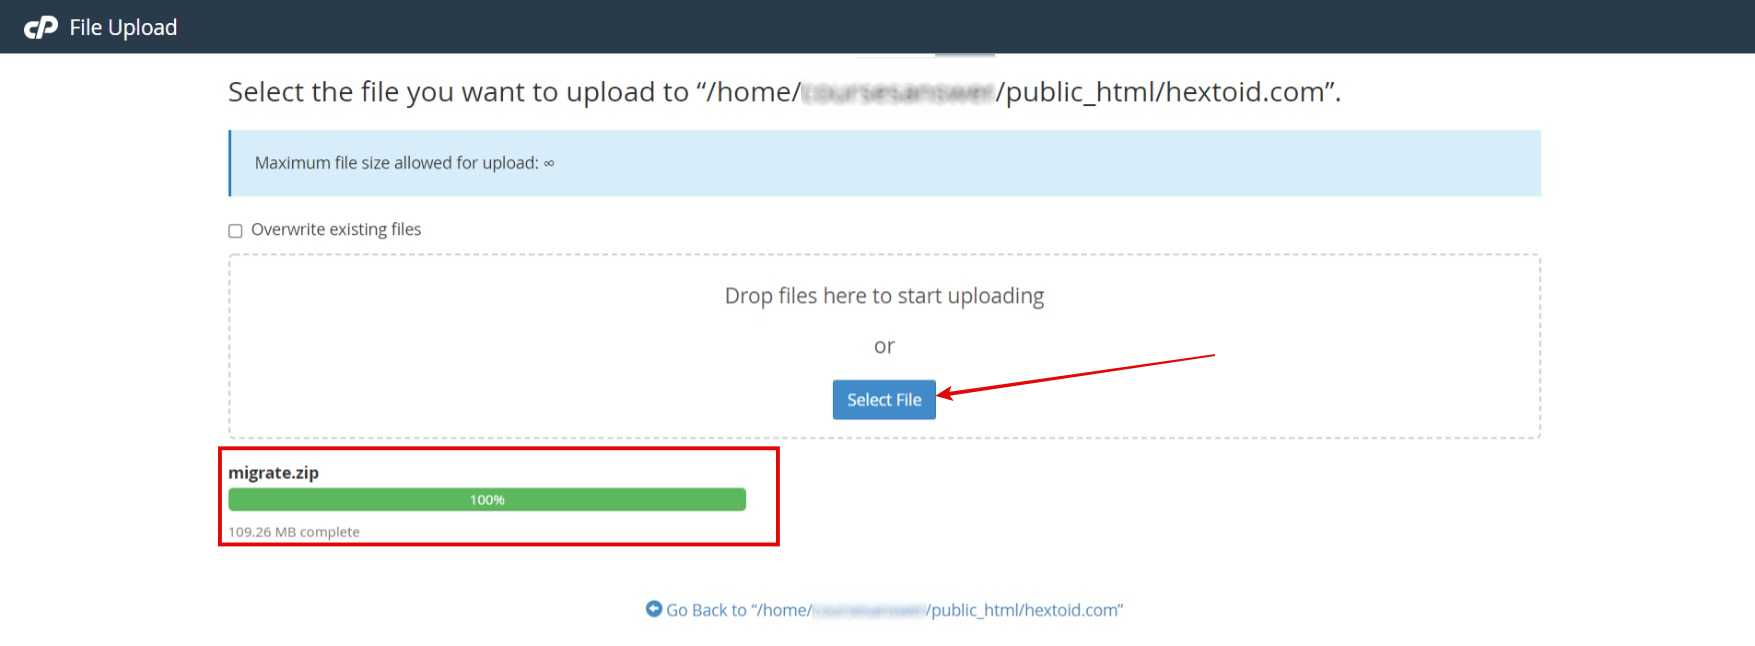 Upload the .zip file downloaded in Step 4